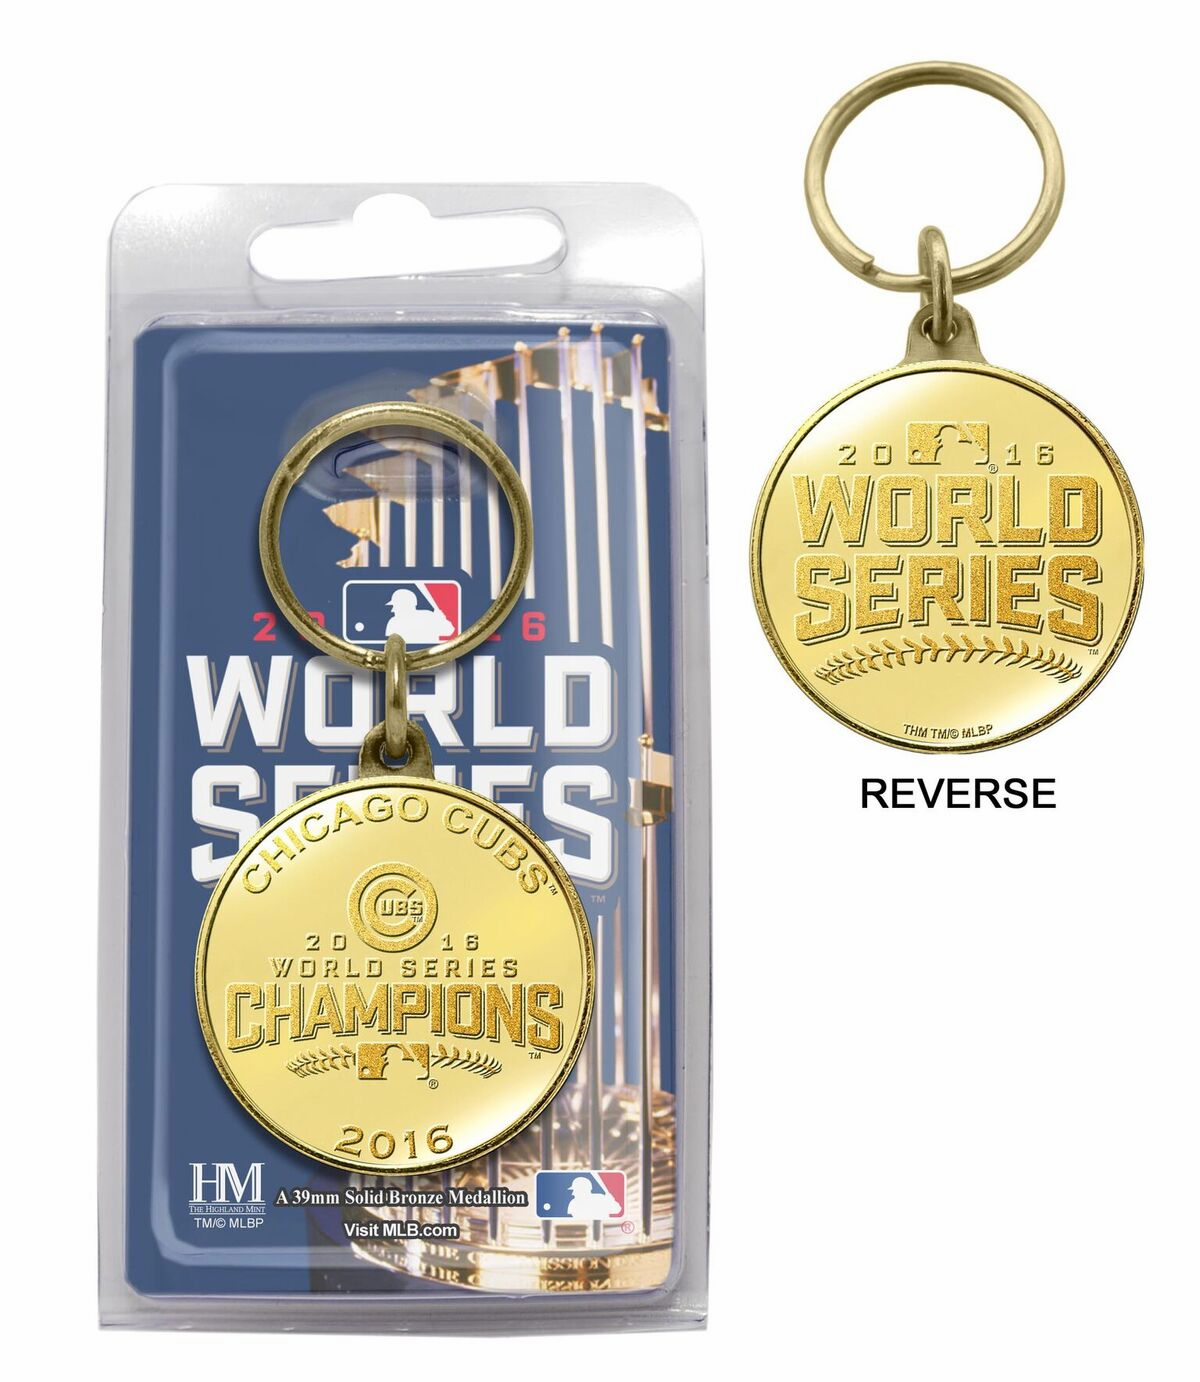 Chicago Cubs 2016 World Series Champions Bronze Medallion Key Chain<br>ONLY 1 LEFT!